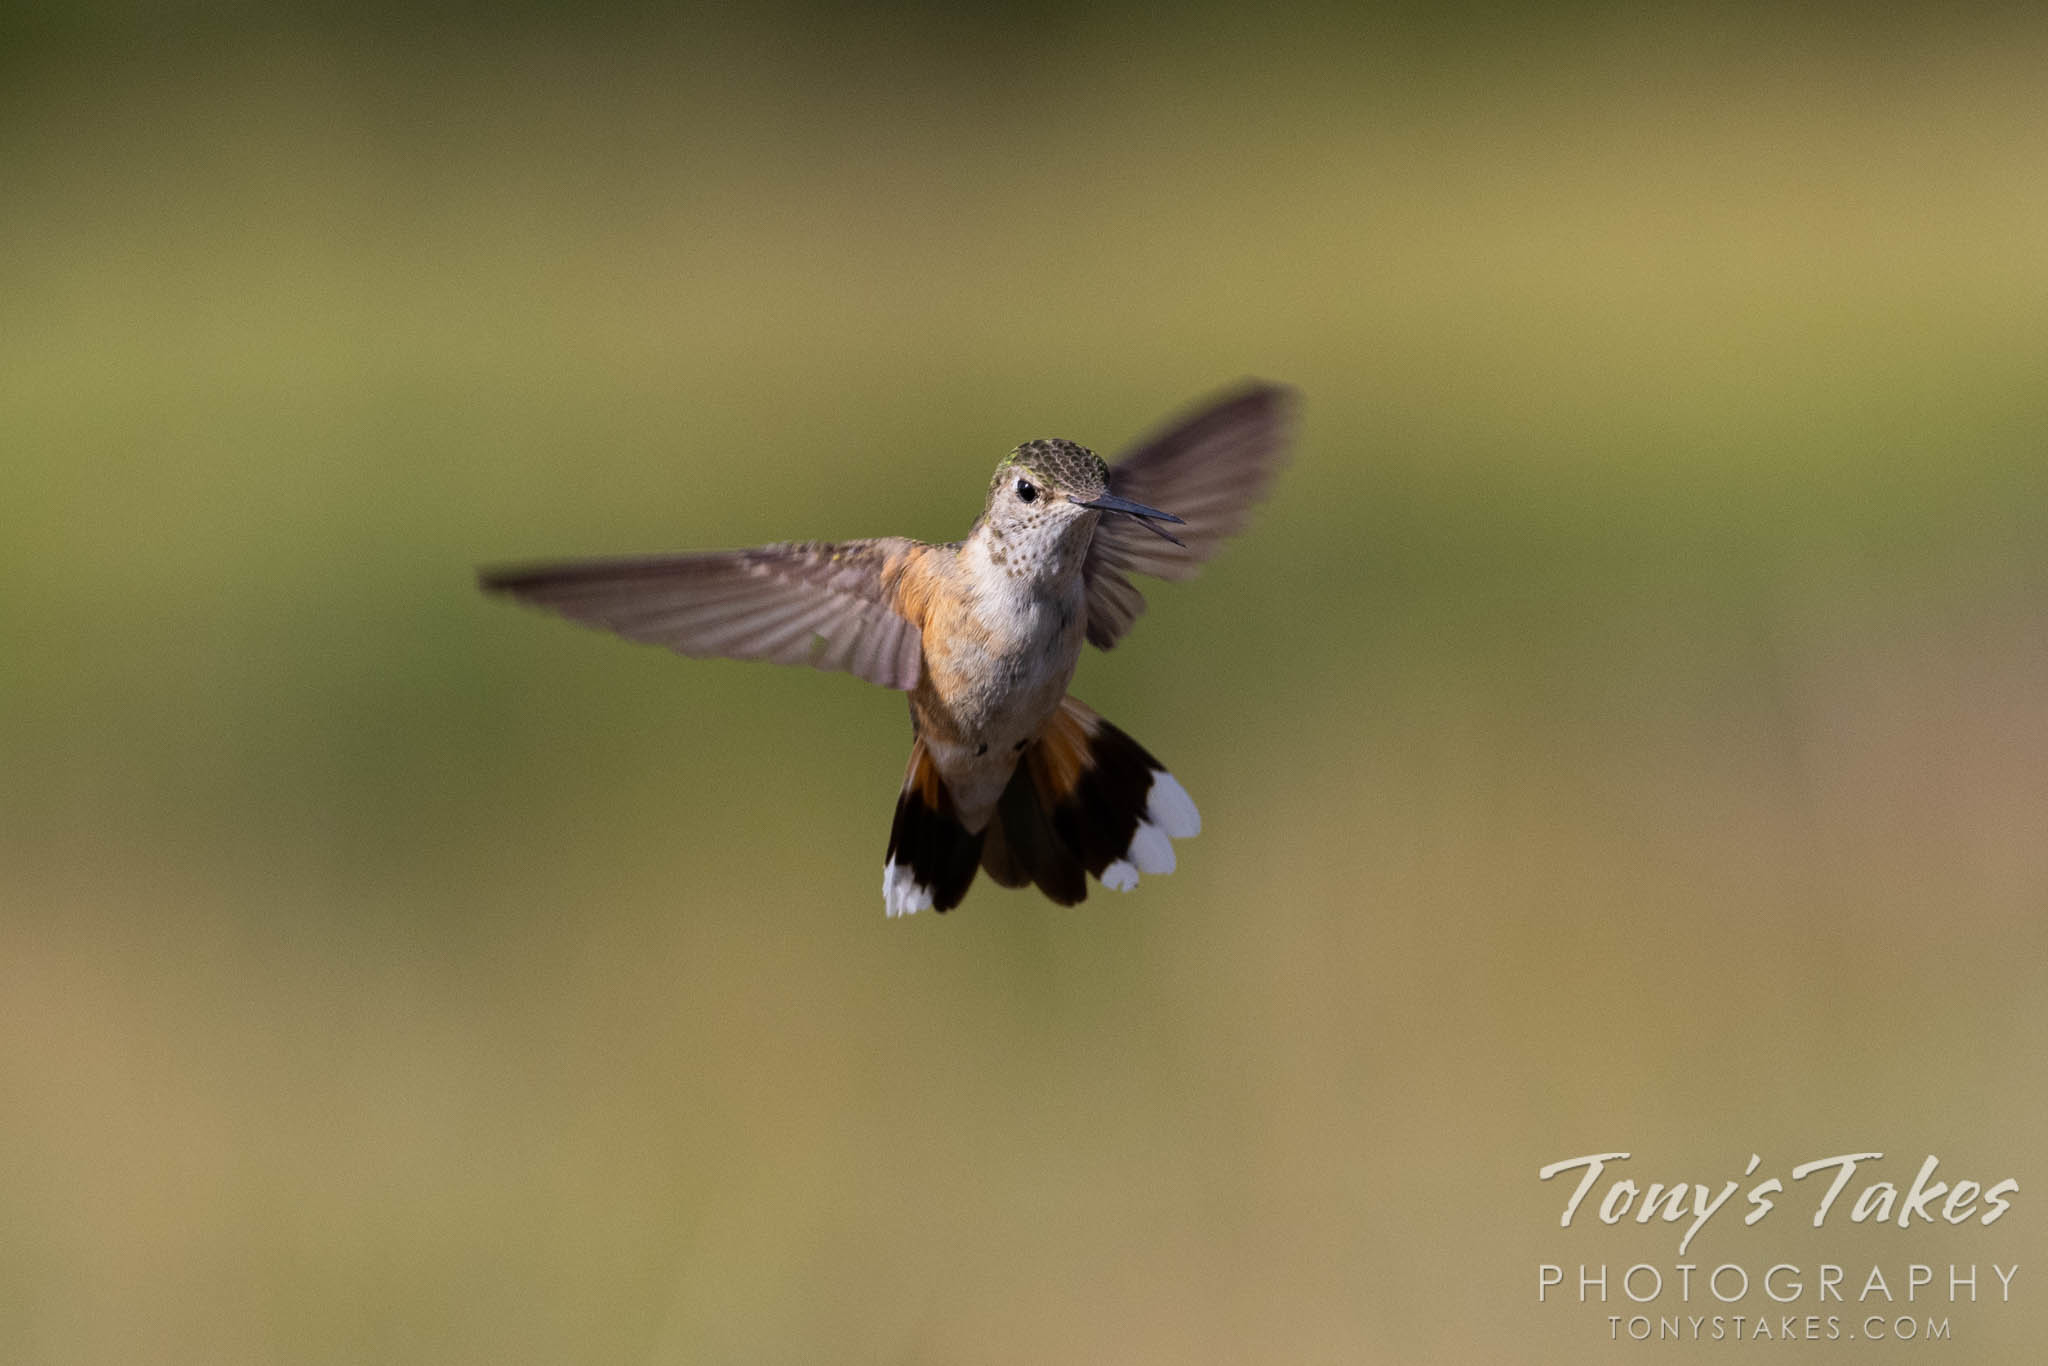 Hummingbird in flight. Canon R5, Canon EF 100-400mm f/4.5-5.6L IS II USM @ 350mm, 1/2000, f/8, ISO 640.